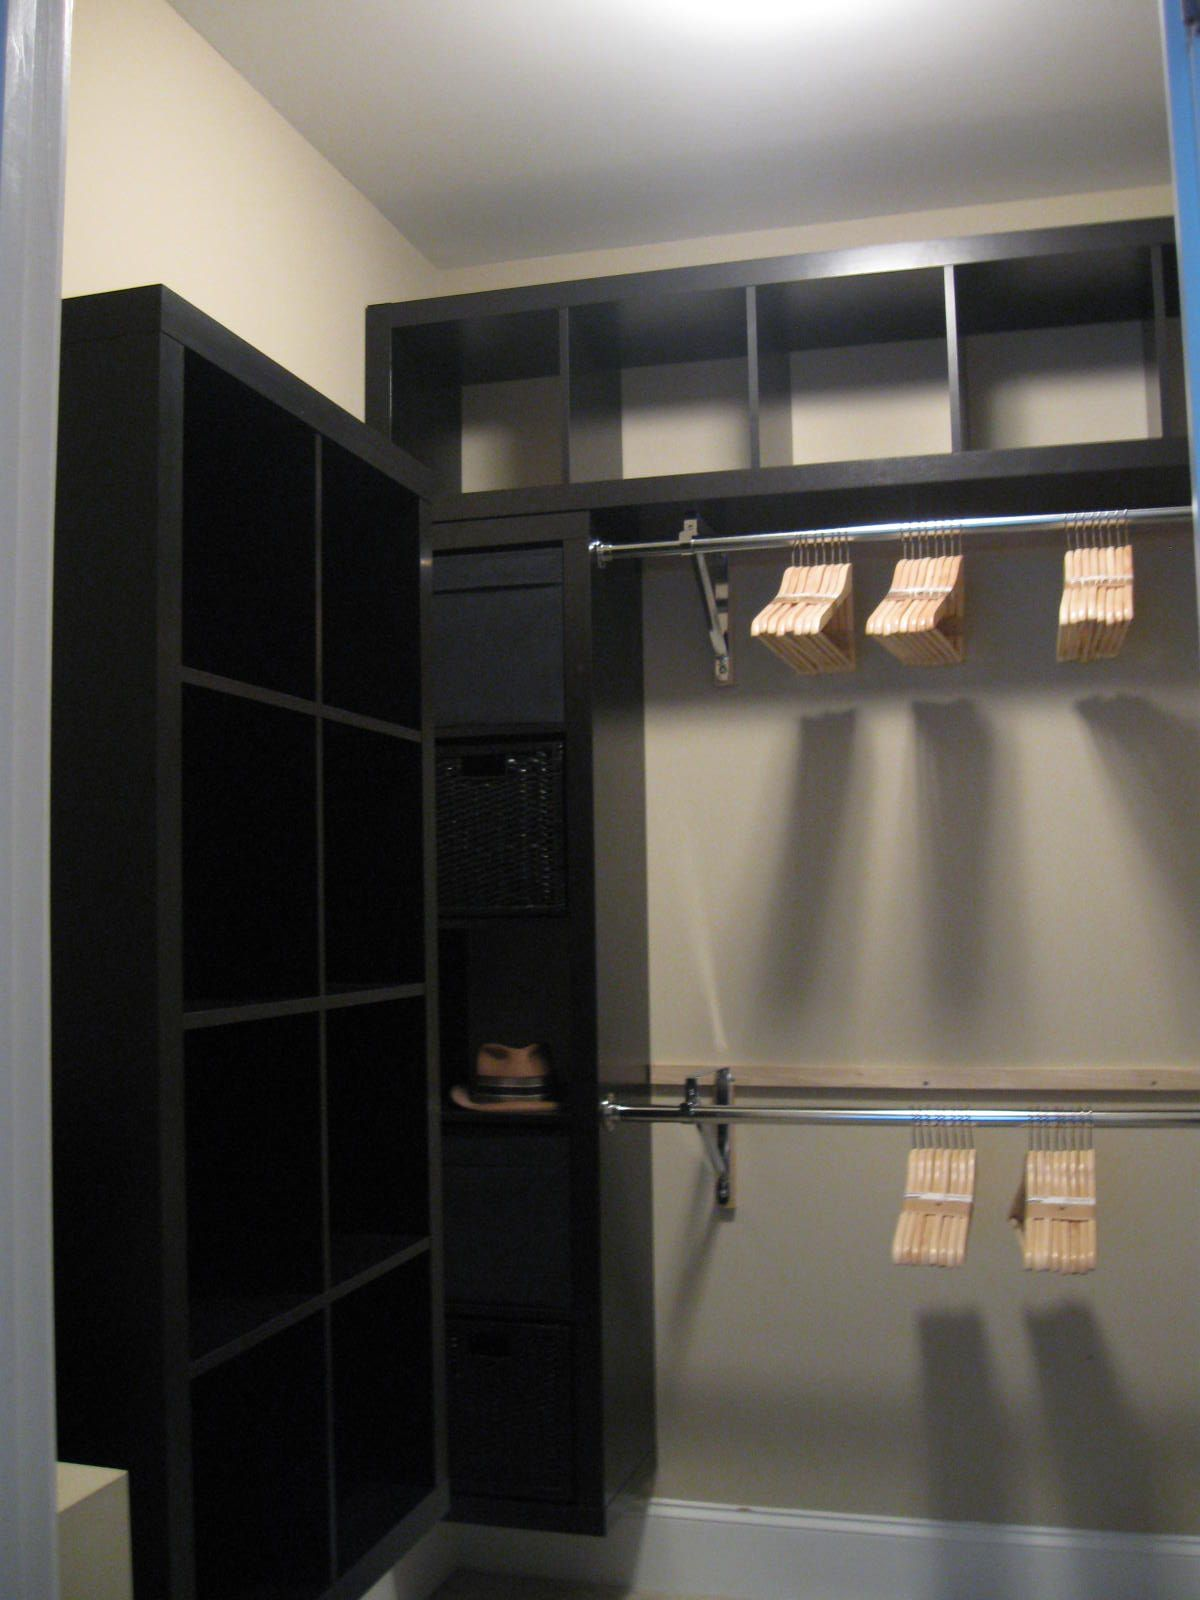 17 best images about dream closet on pinterest purse storage closet system and walk in